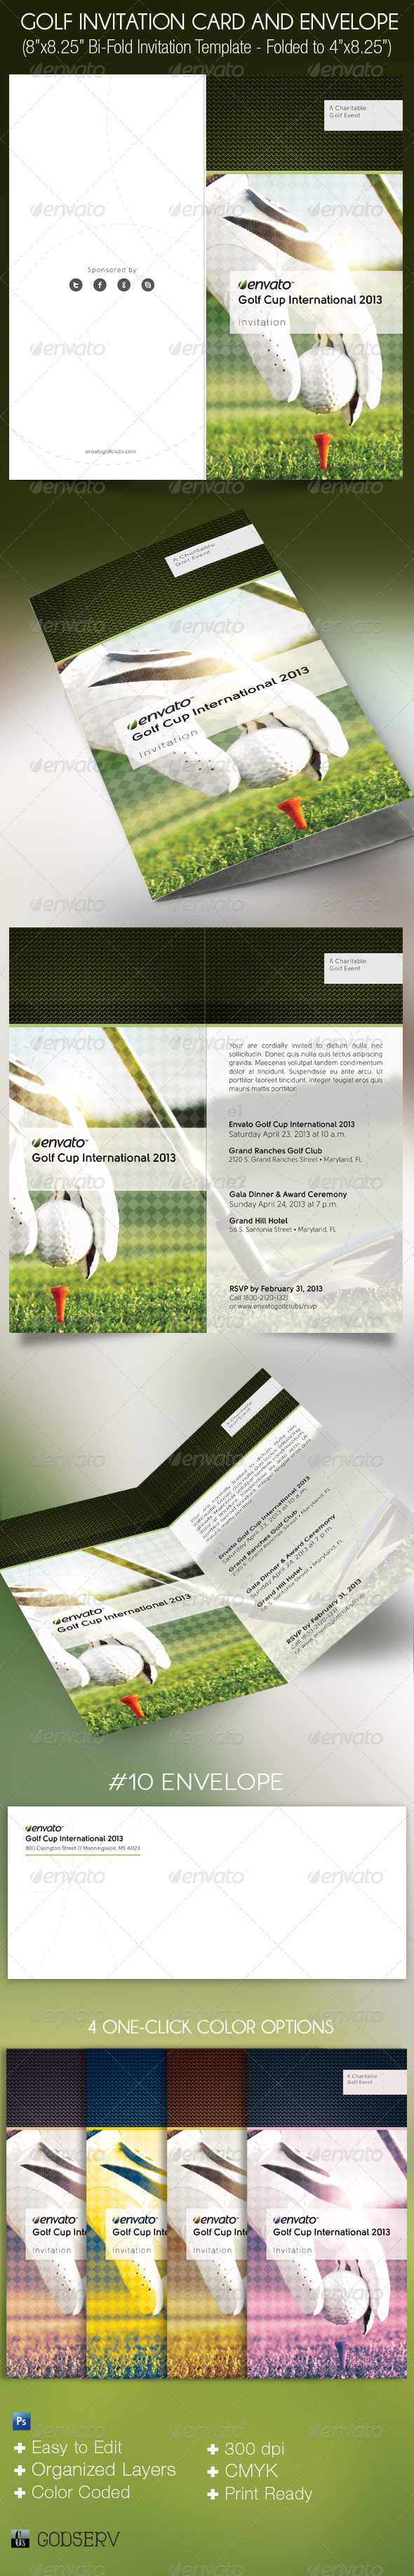 GraphicRiver Golf Invitation Card and Envelope Template 4566486